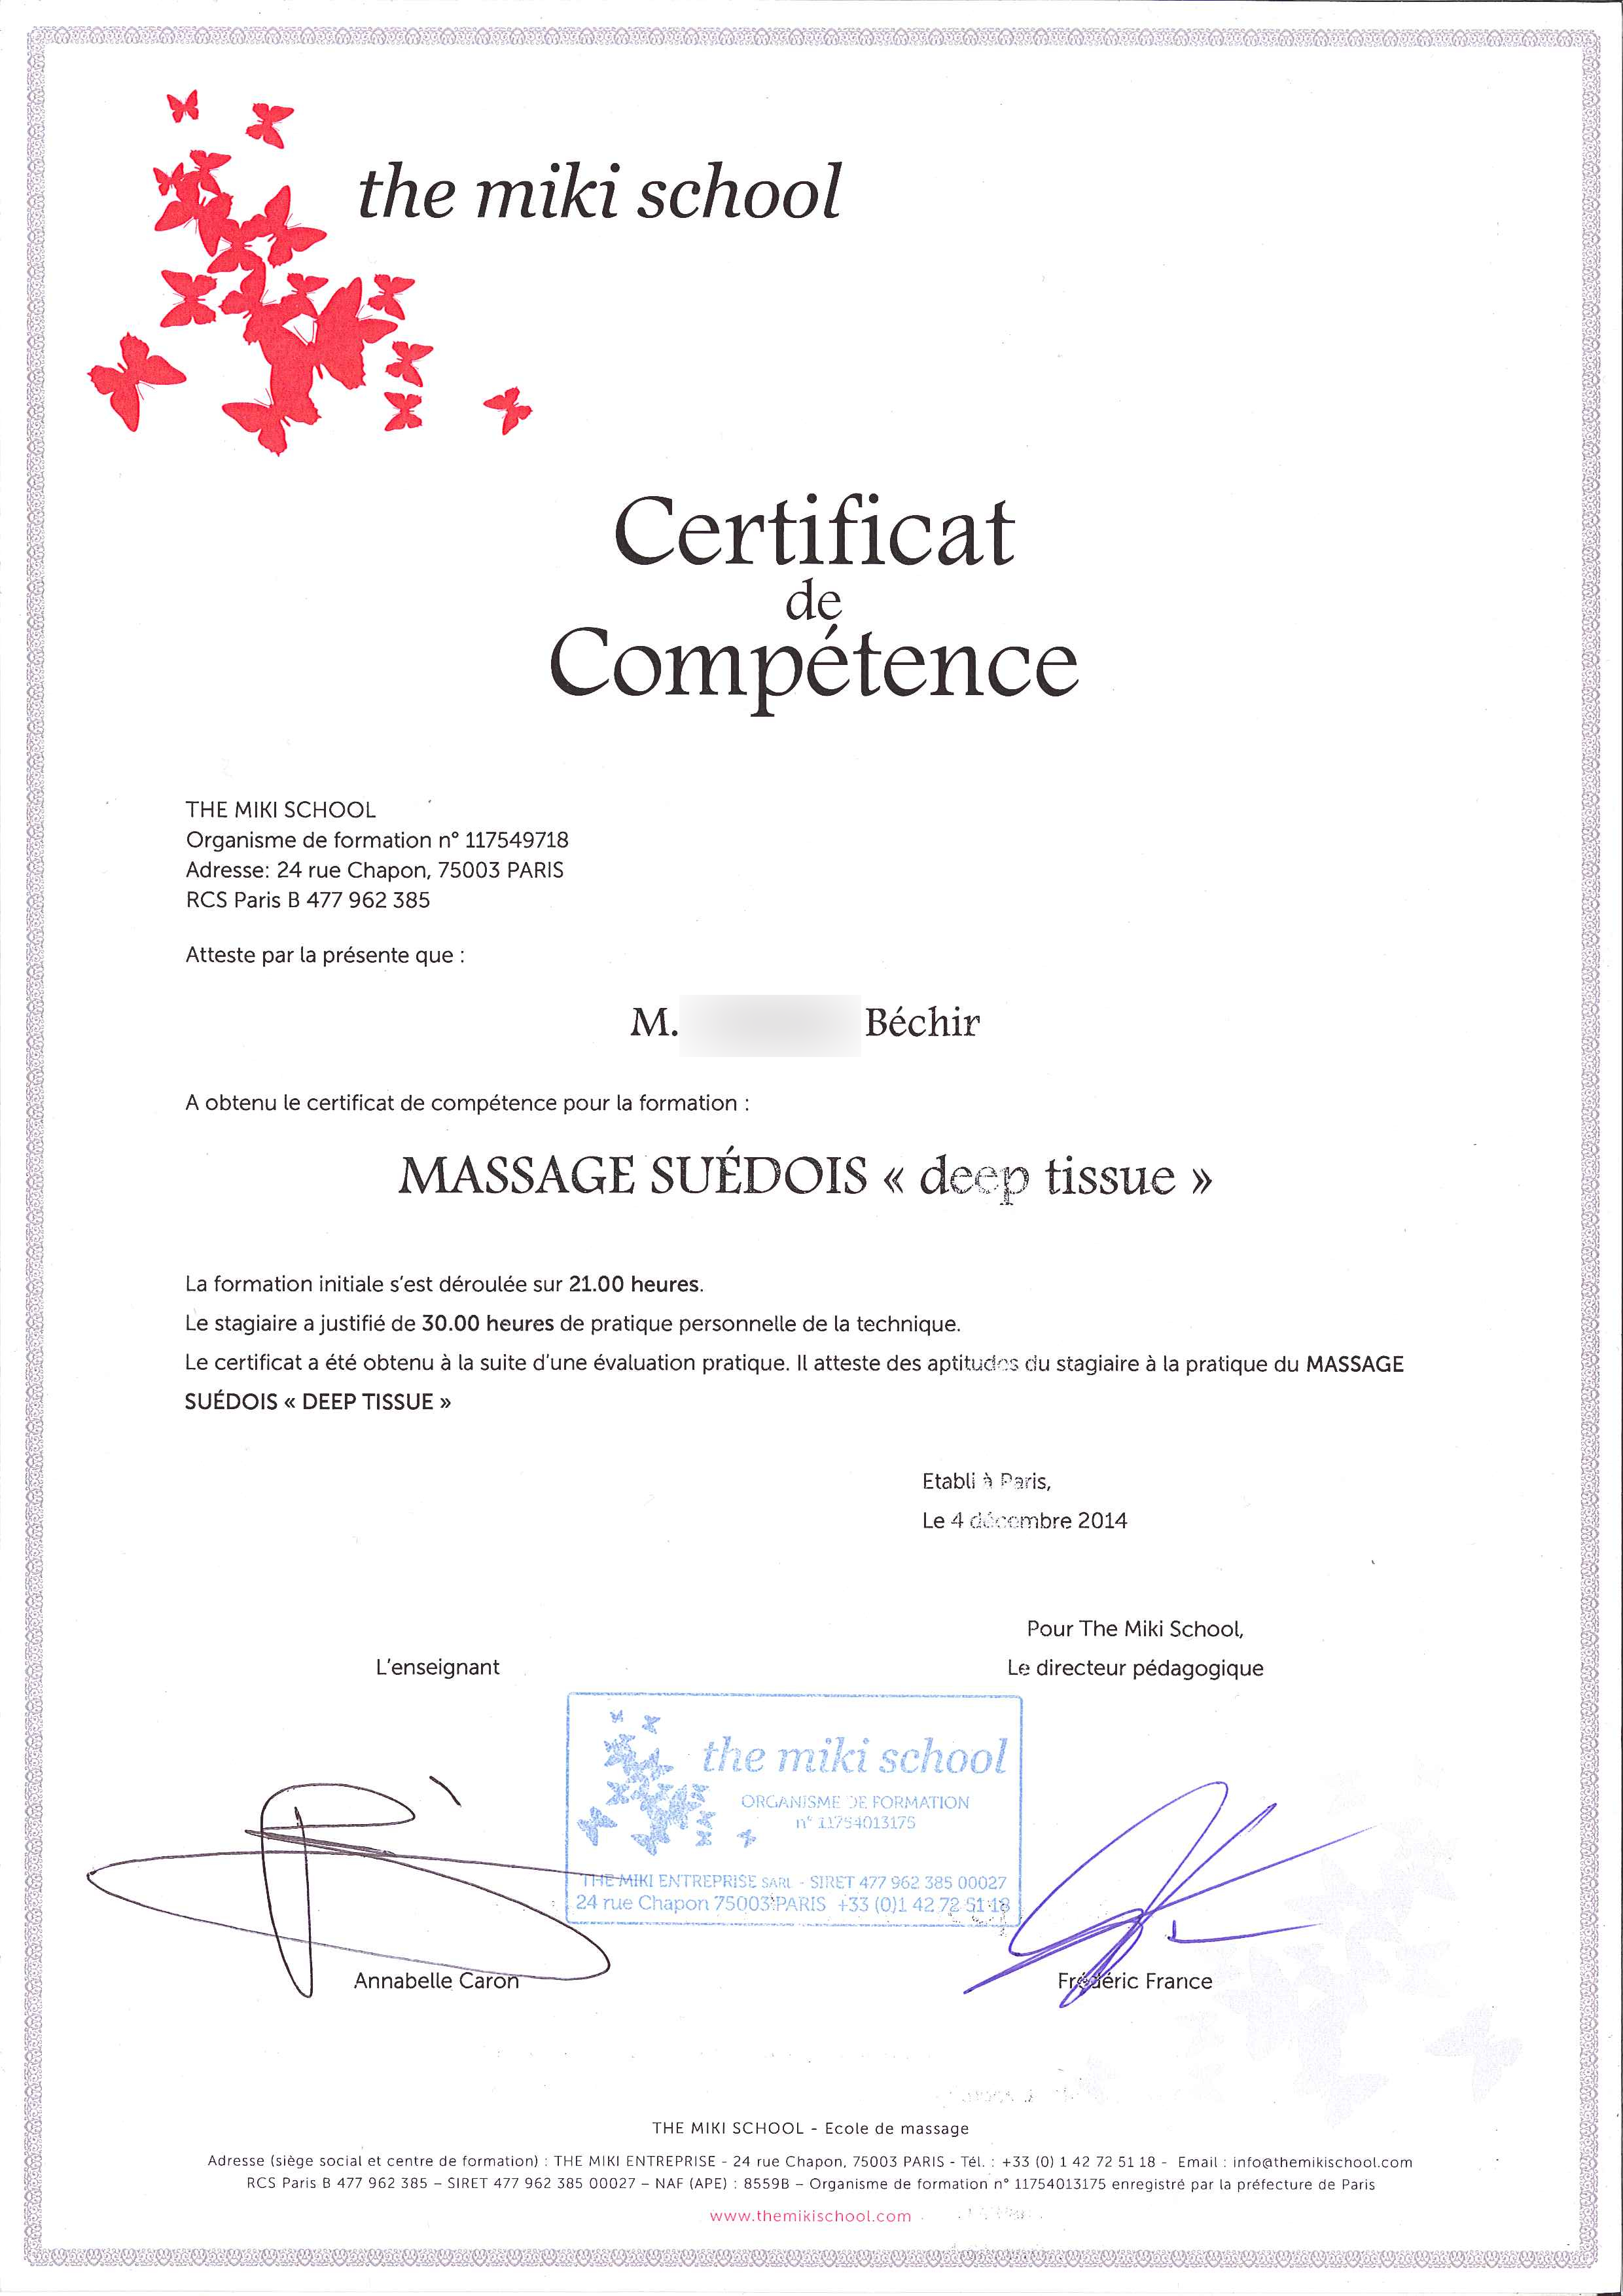 573b166eb7892_certification massage suedois.pdf